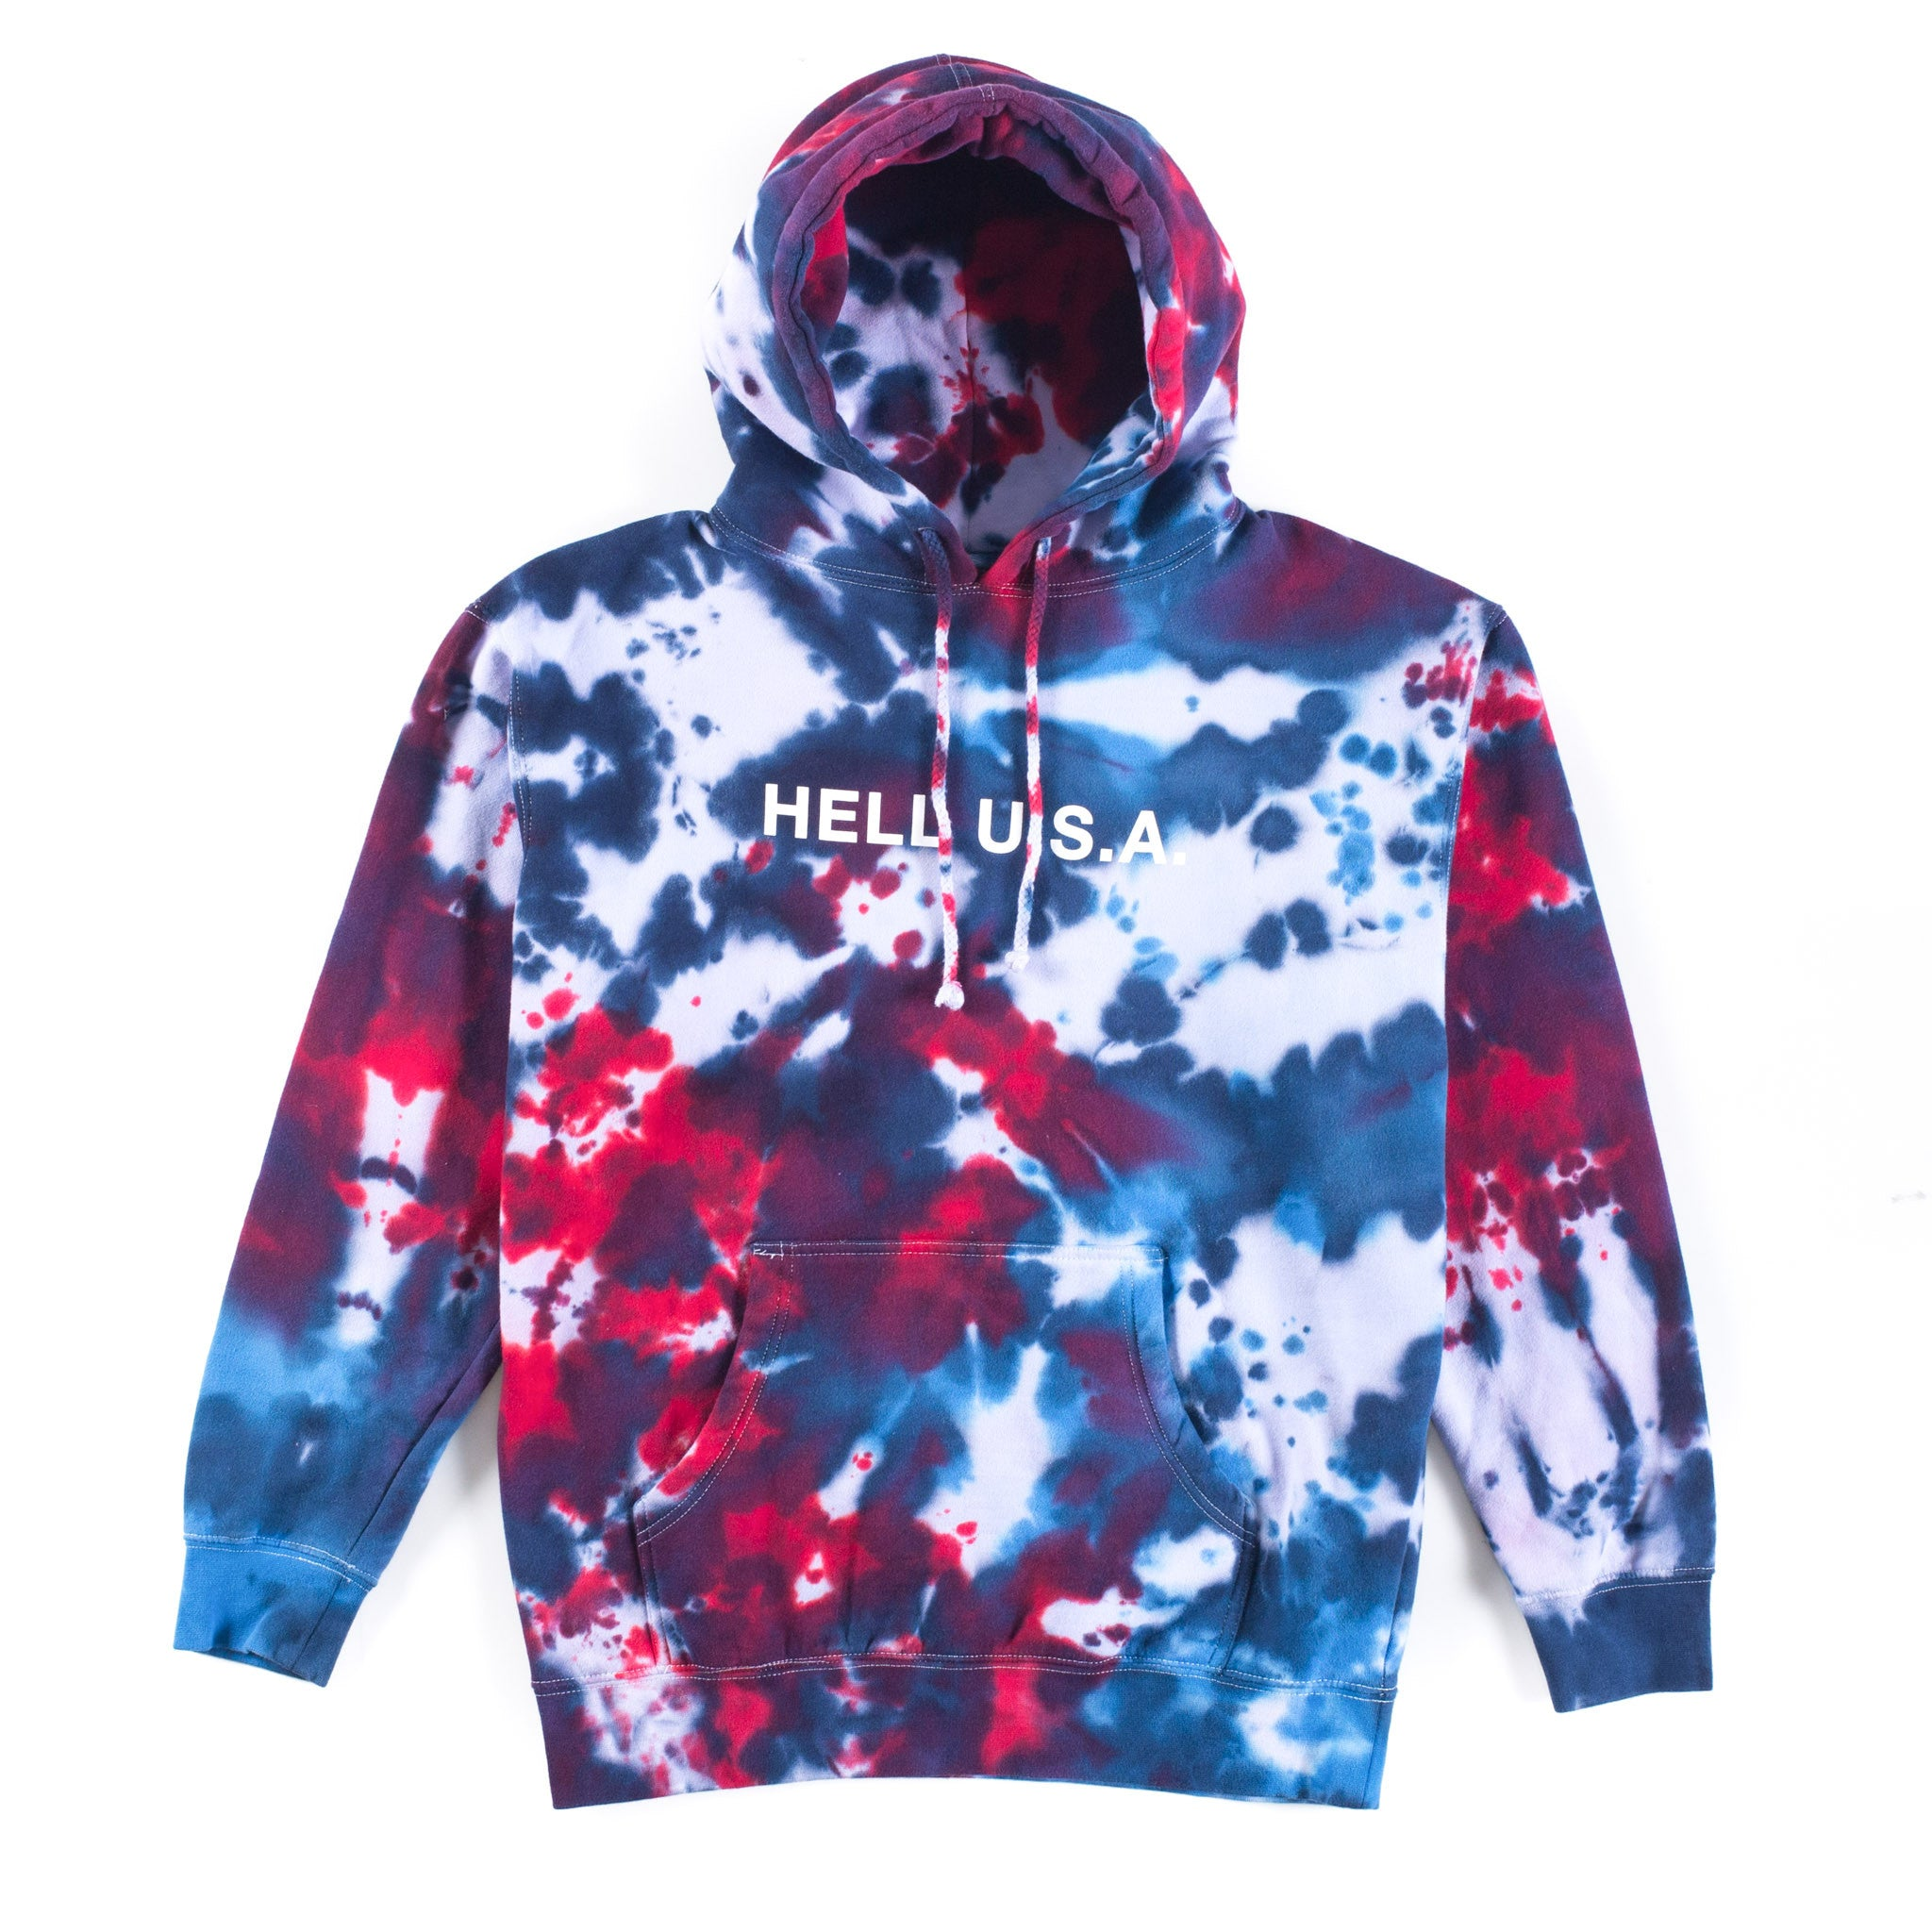 HELL USA PULLOVER HOODY